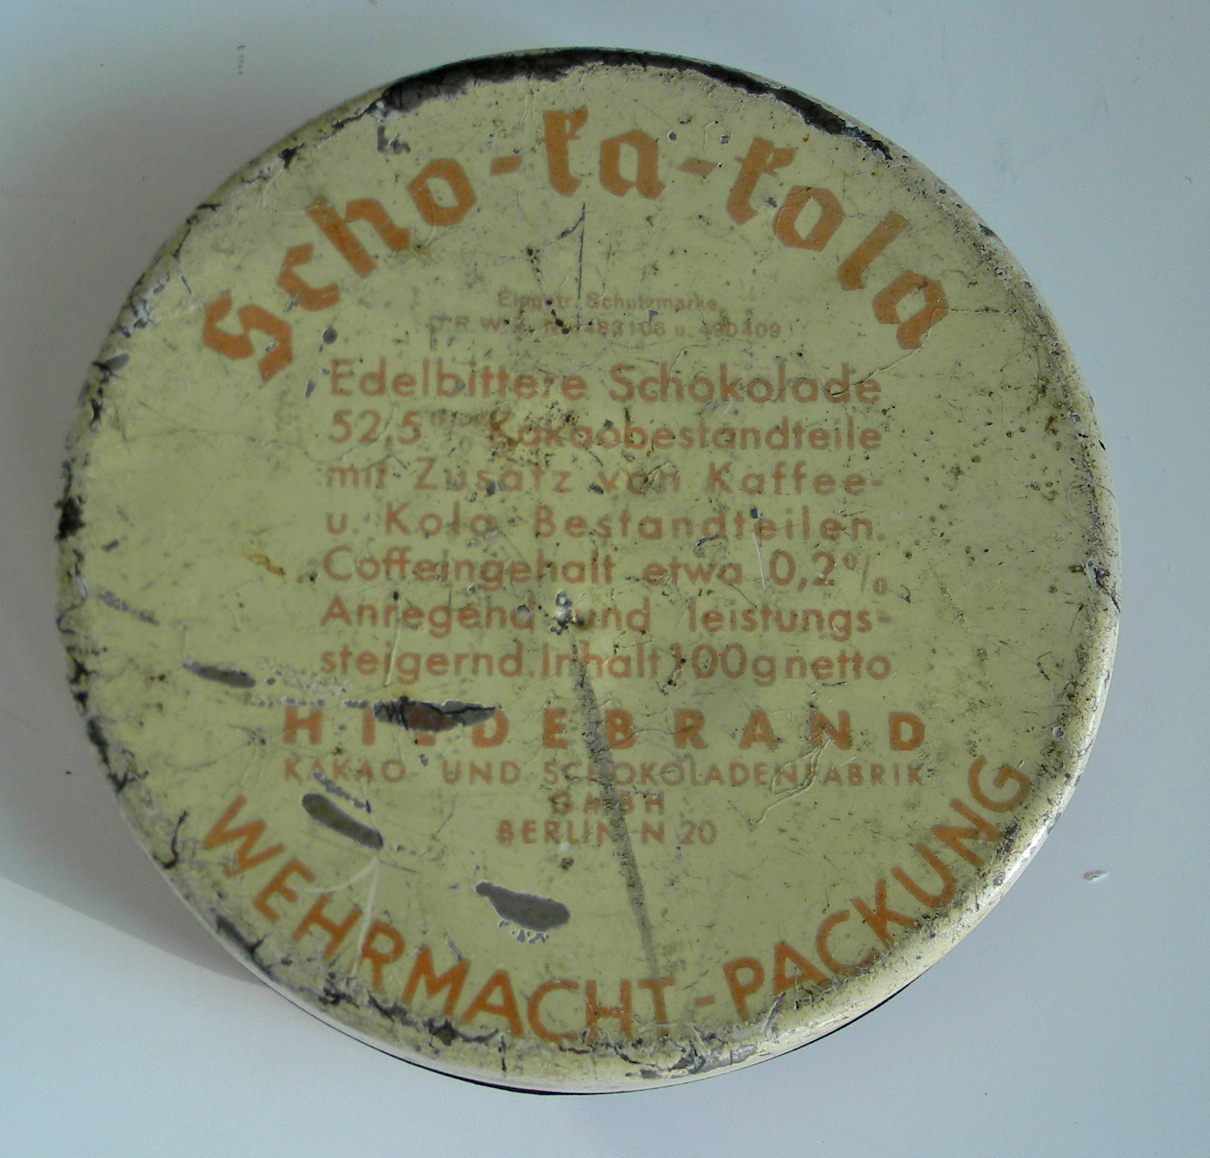 Scho-ka-kola tin Berlin (empty)